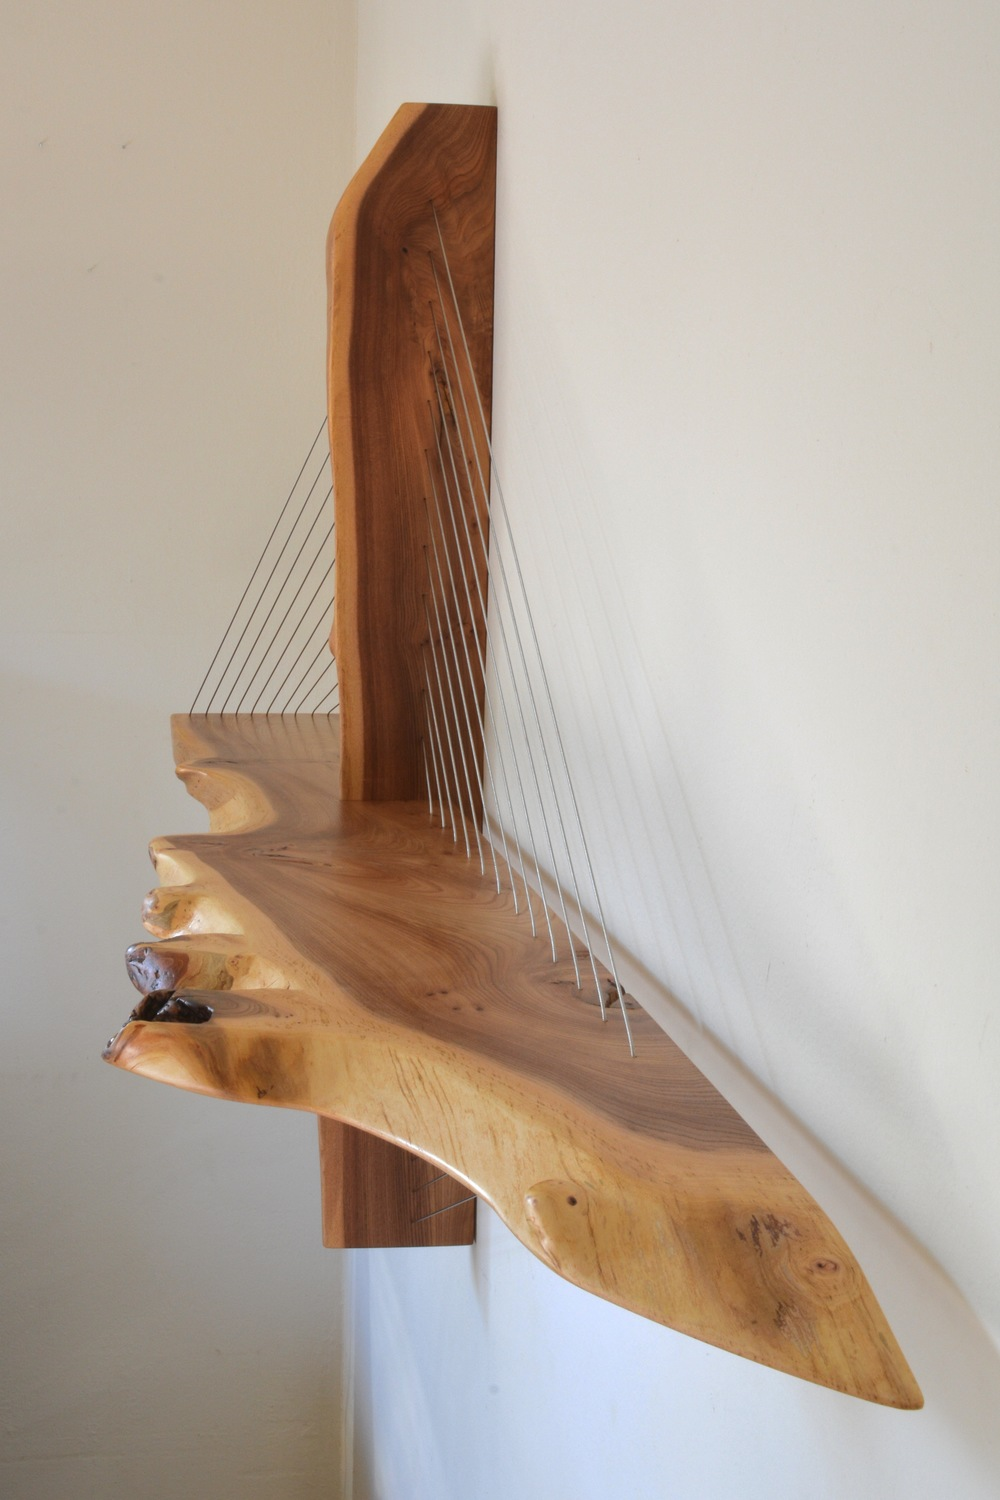 Live Edge Suspension Shelf